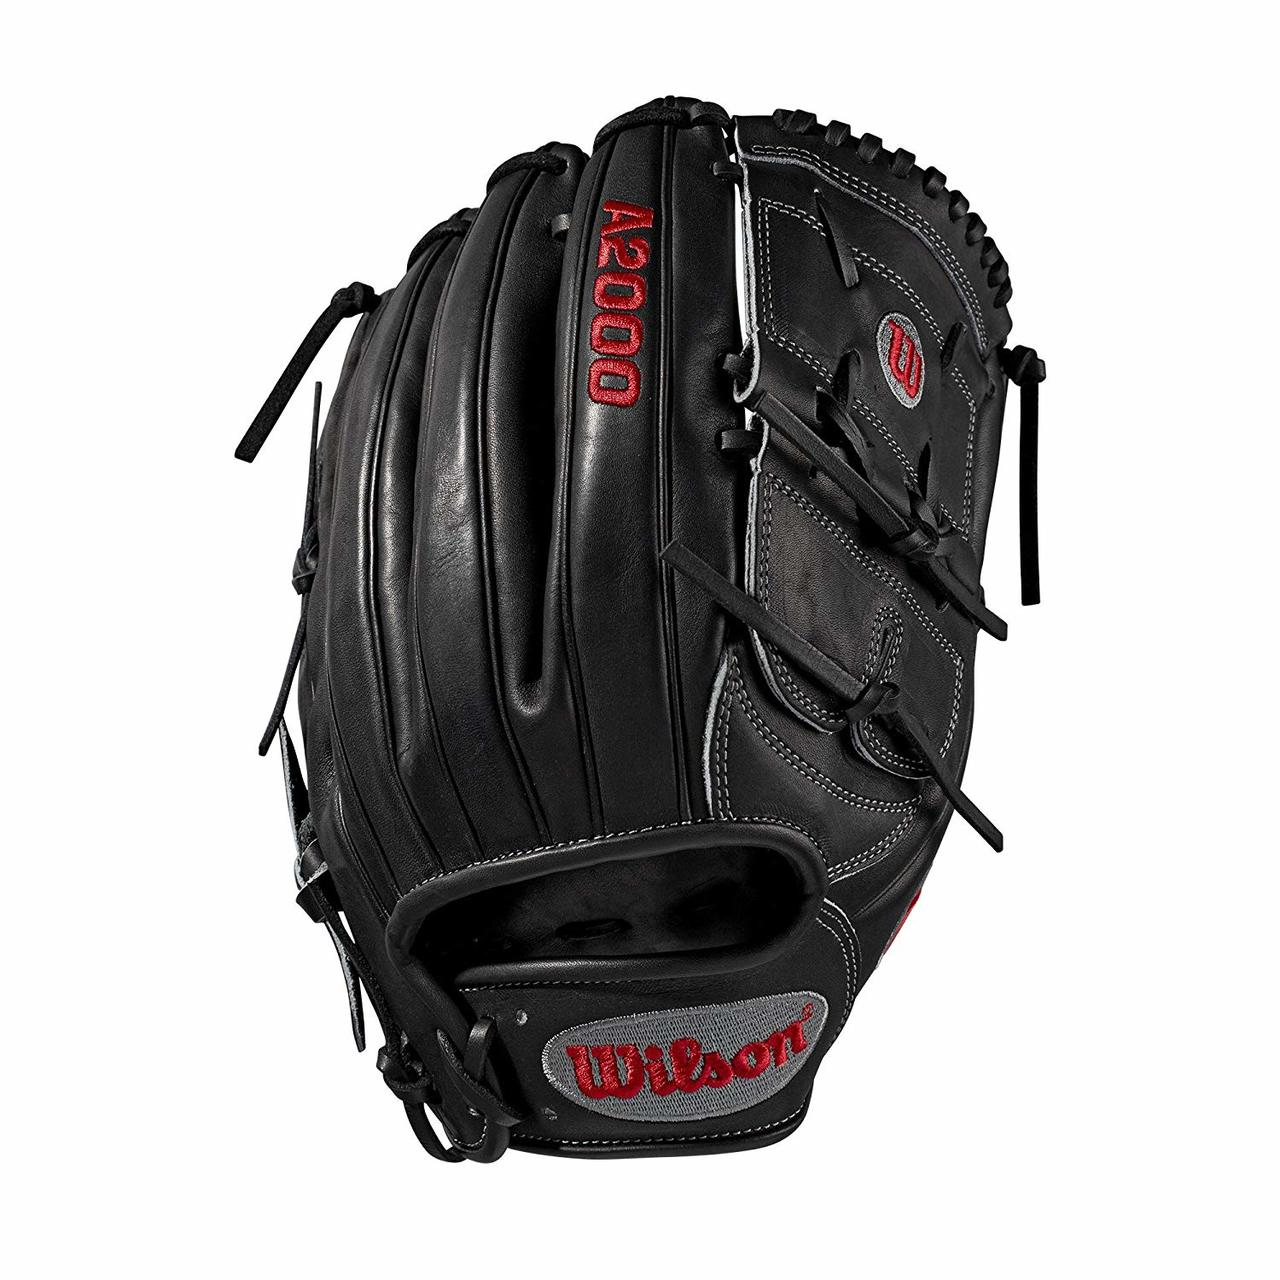 wilson-a2000-12-5-baseball-glove-2019-right-hand-throw WTA20RB19125-RightHandThrow  887768701987 12 inch pitchers glove Pitcher WTA20RB19B125 Two-piece web Black Pro Stock